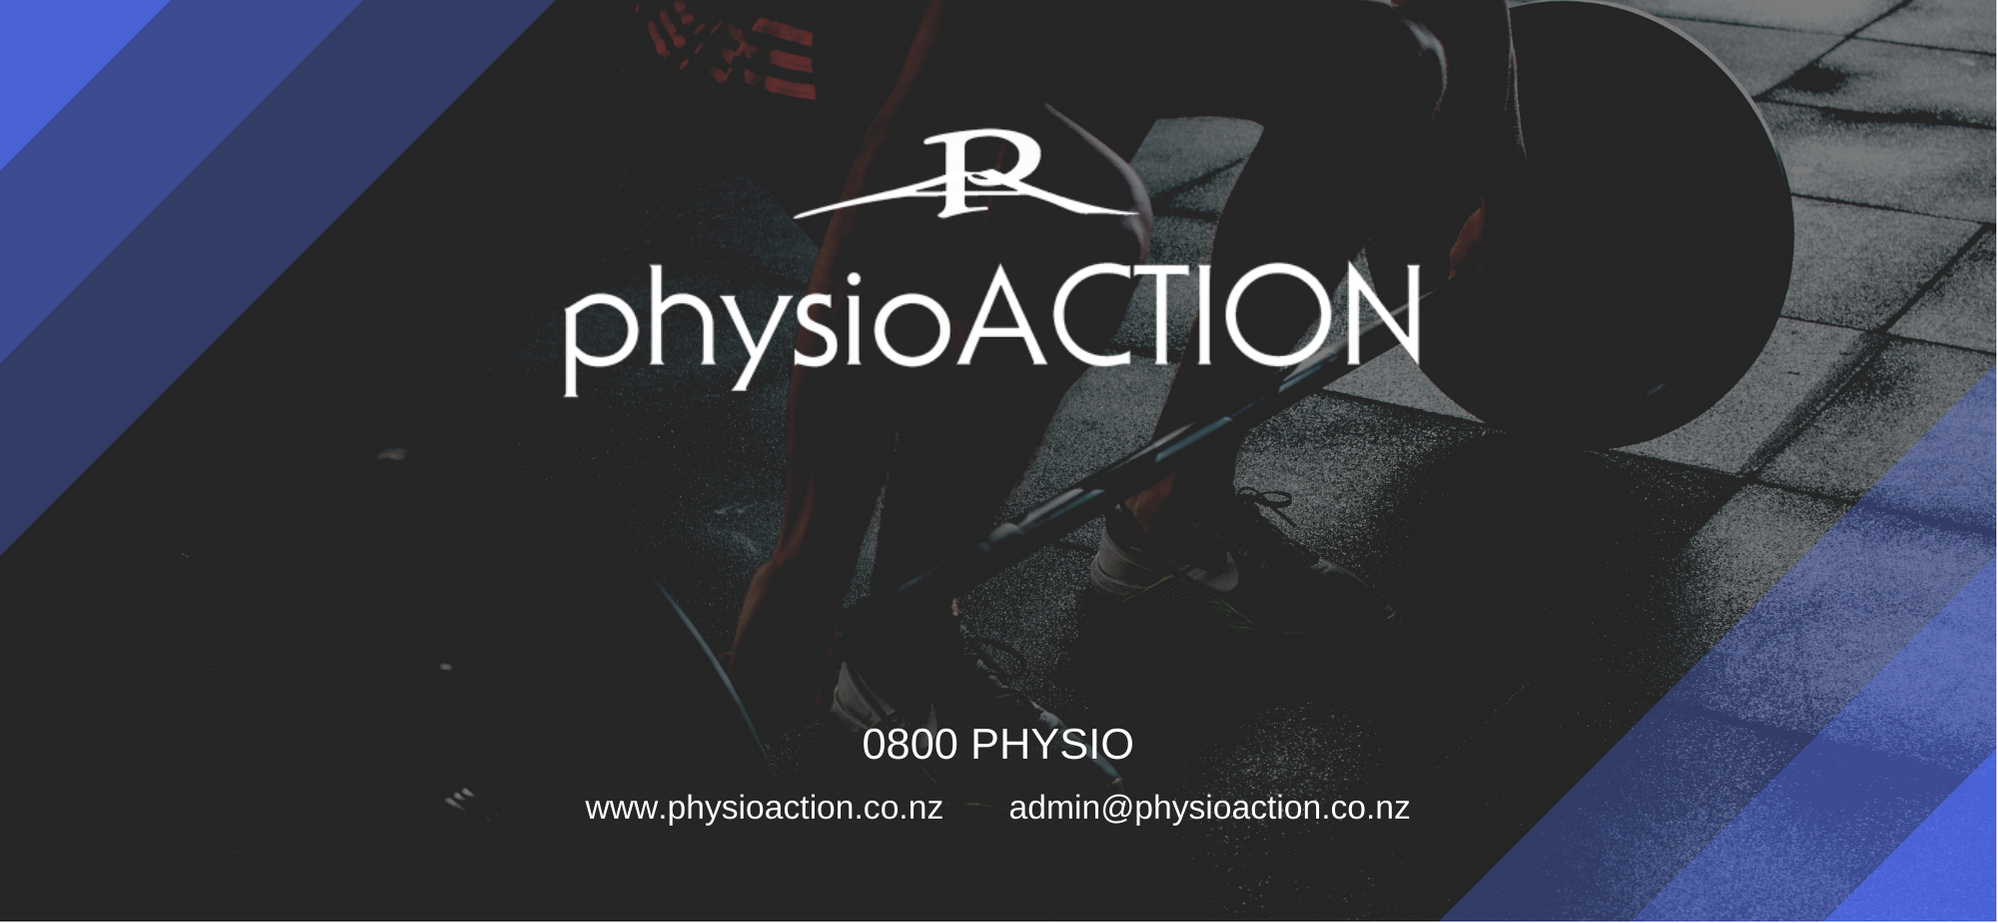 Copy of Copy of PhysioACTION